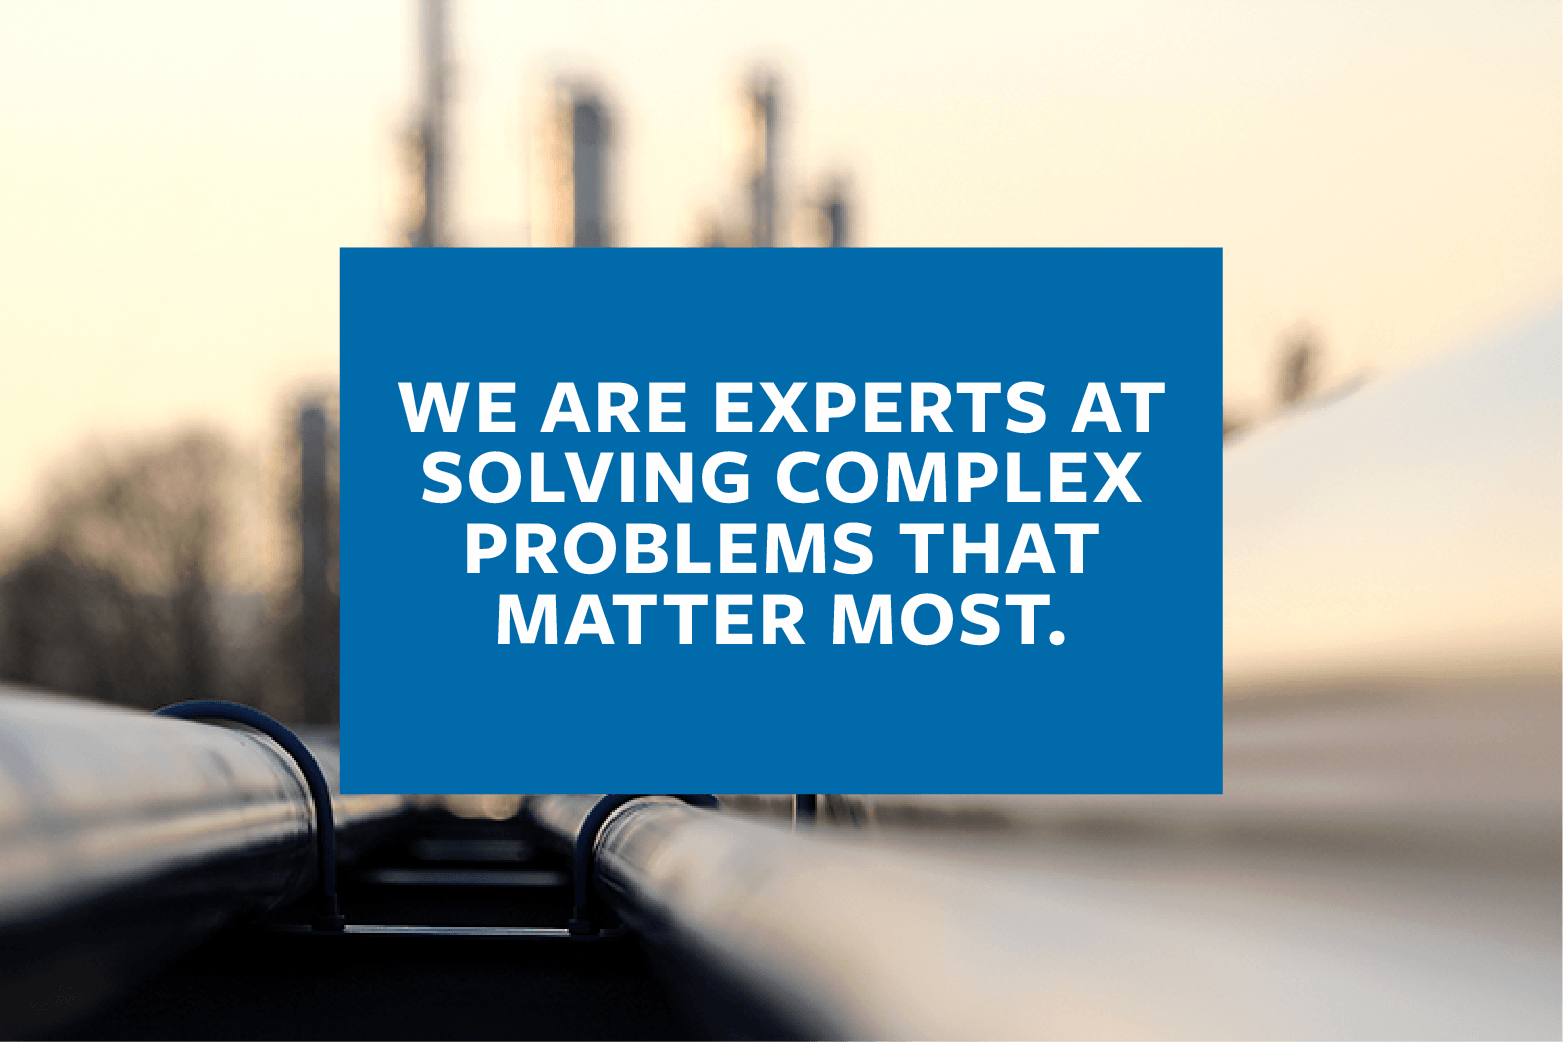 Trindent consultants are experts at solving problems